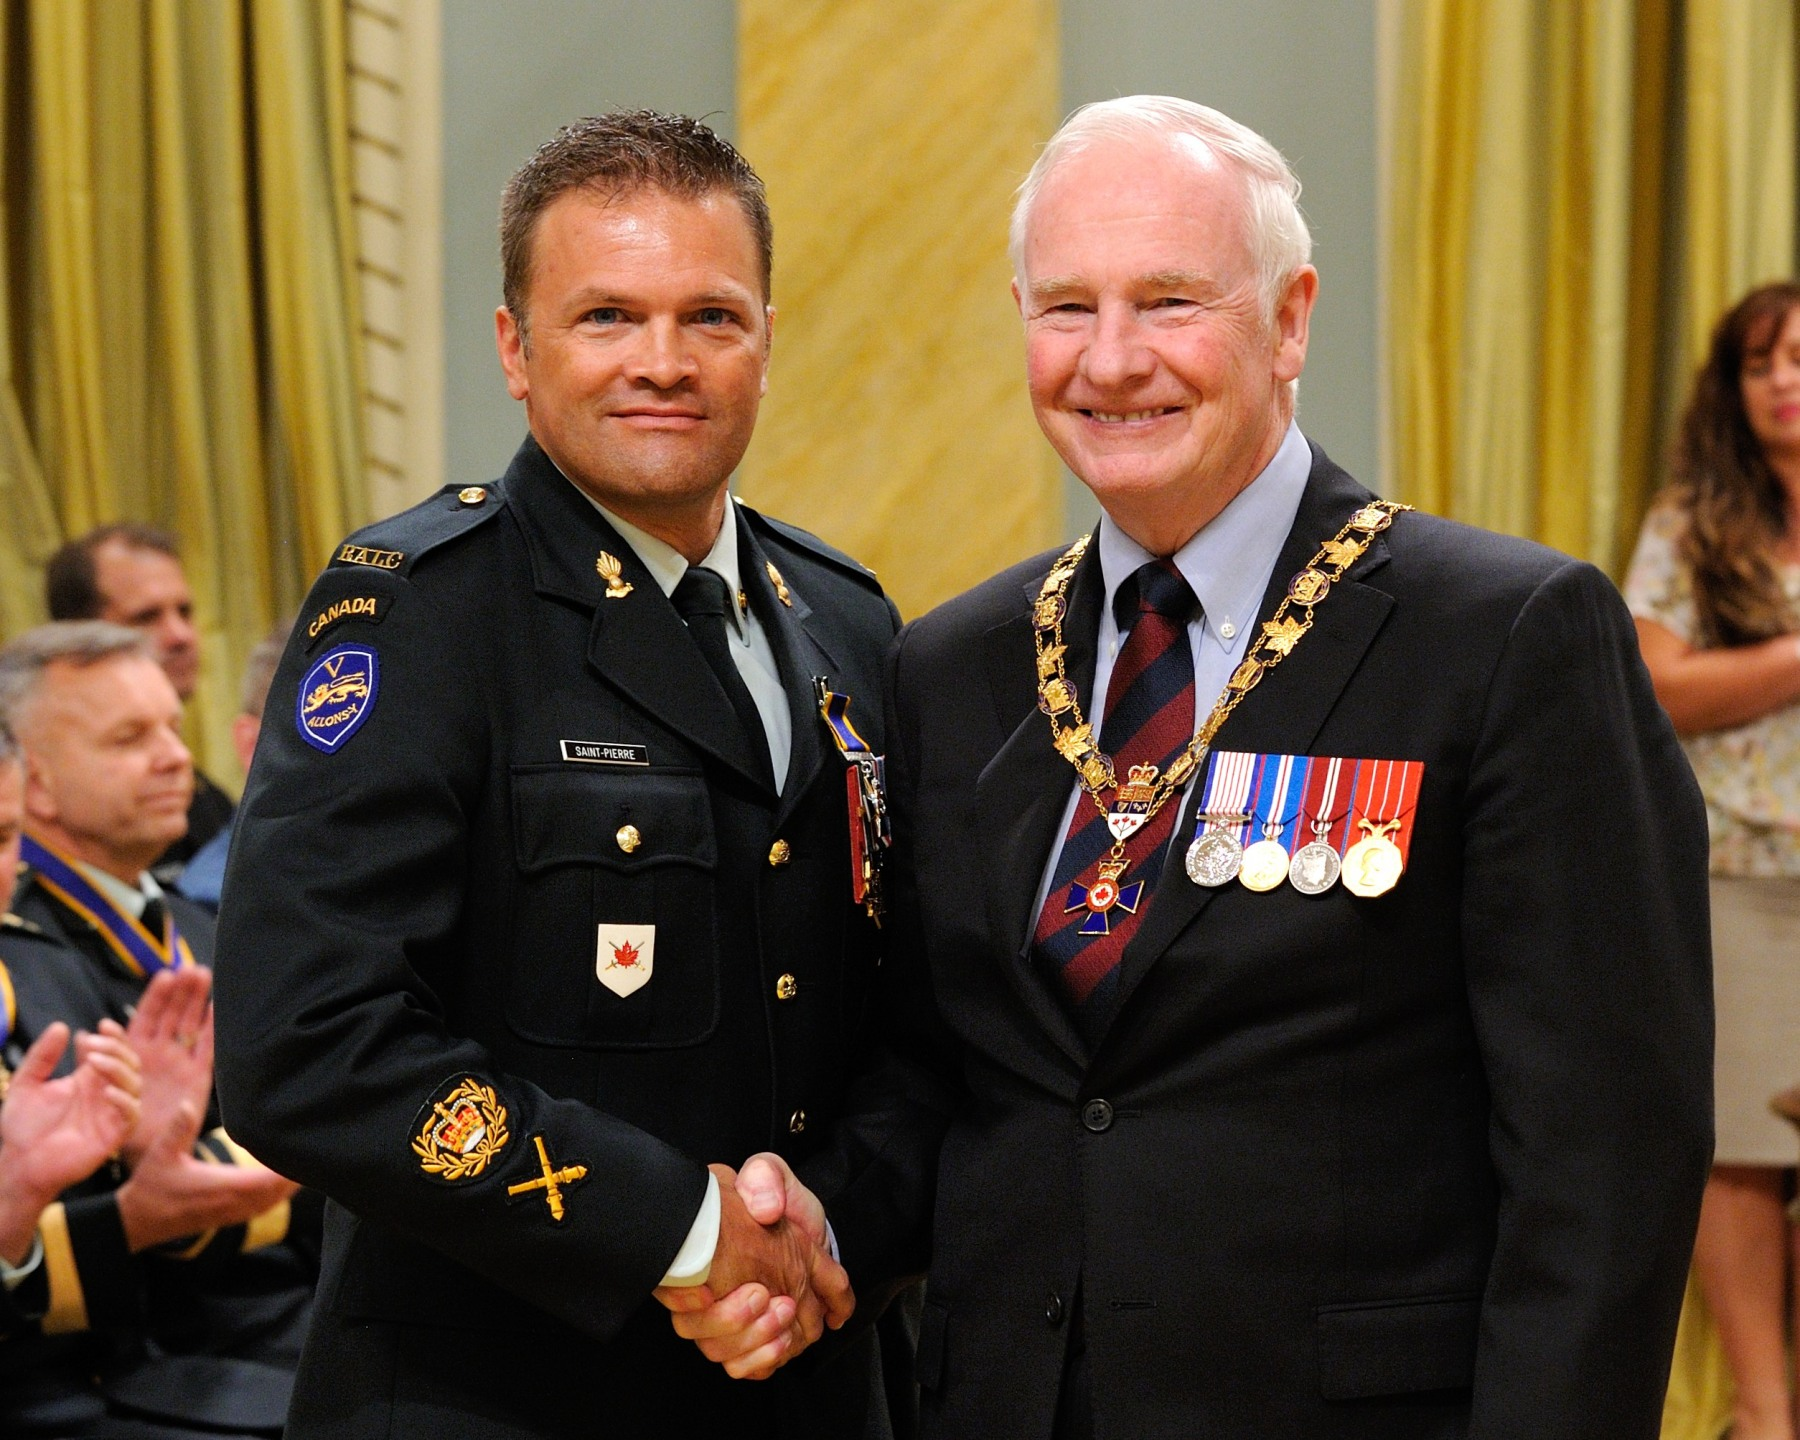 His Excellency presented the Order of Military Merit at the Member level (M.M.M.) to Master Warrant Officer Éric Saint-Pierre, M.M.M., C.D., 5e Régiment d'artillerie légère du Canada, Courcelette, Quebec.